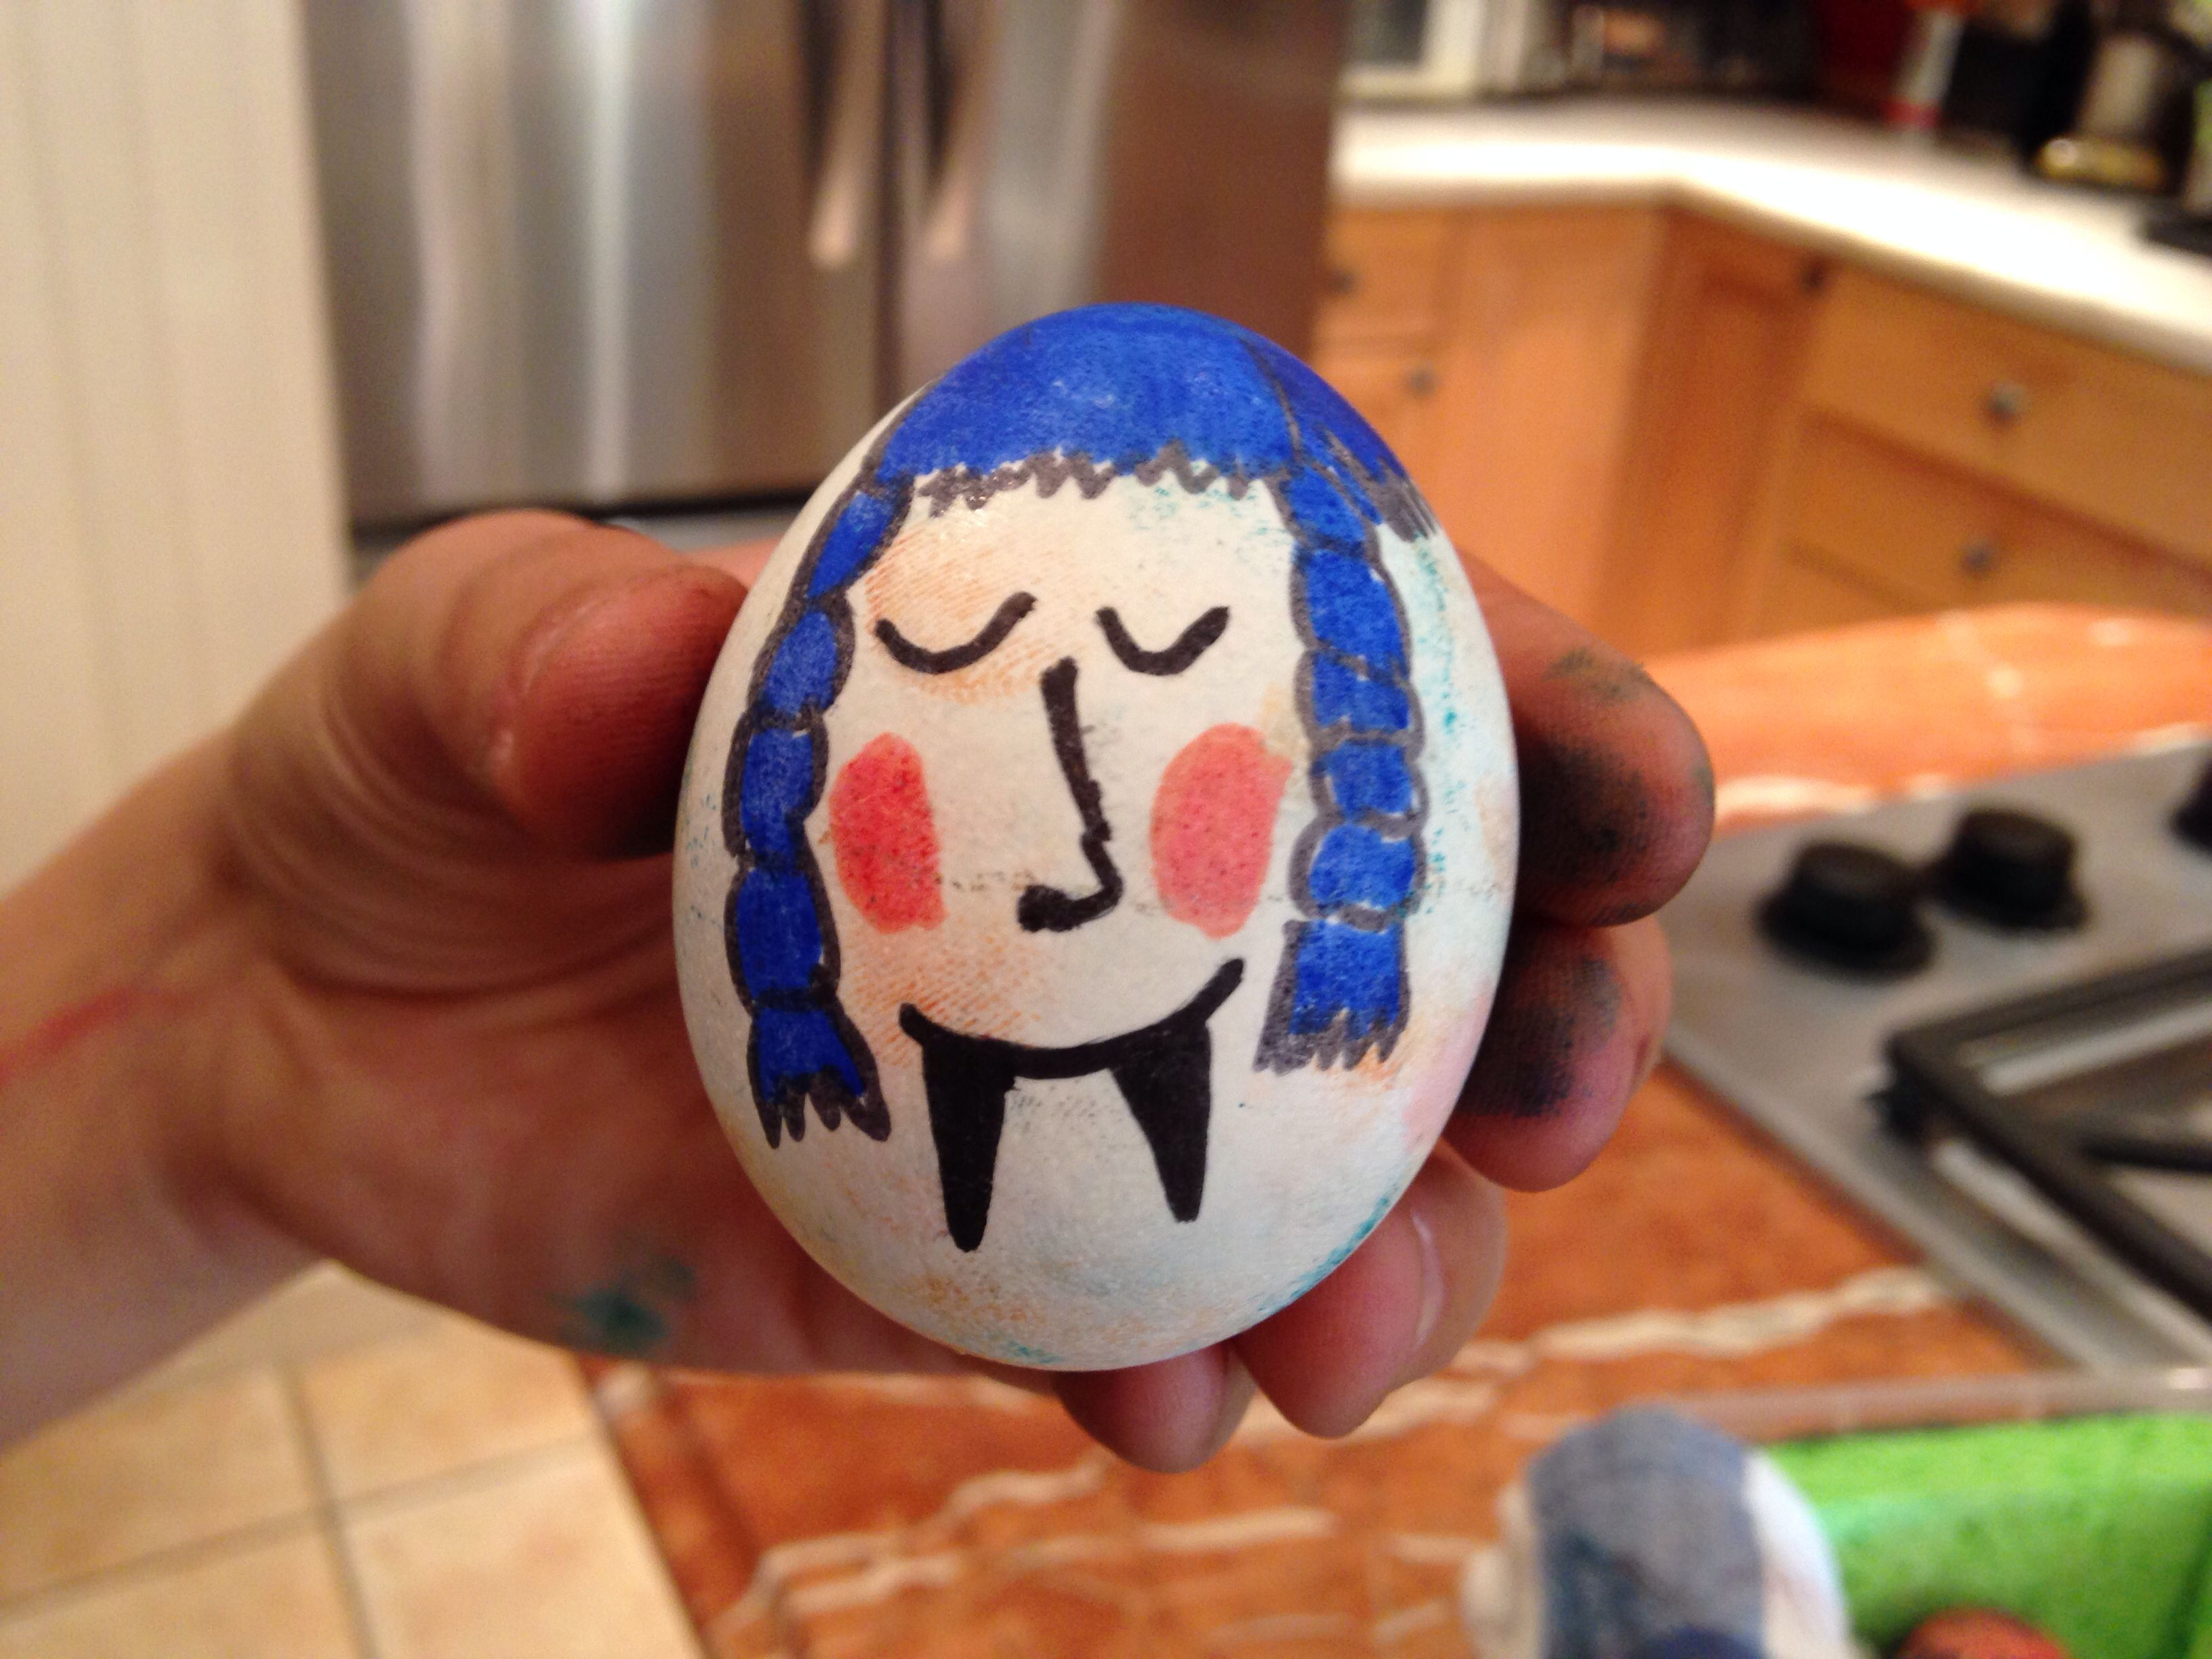 Egg baby project face ...